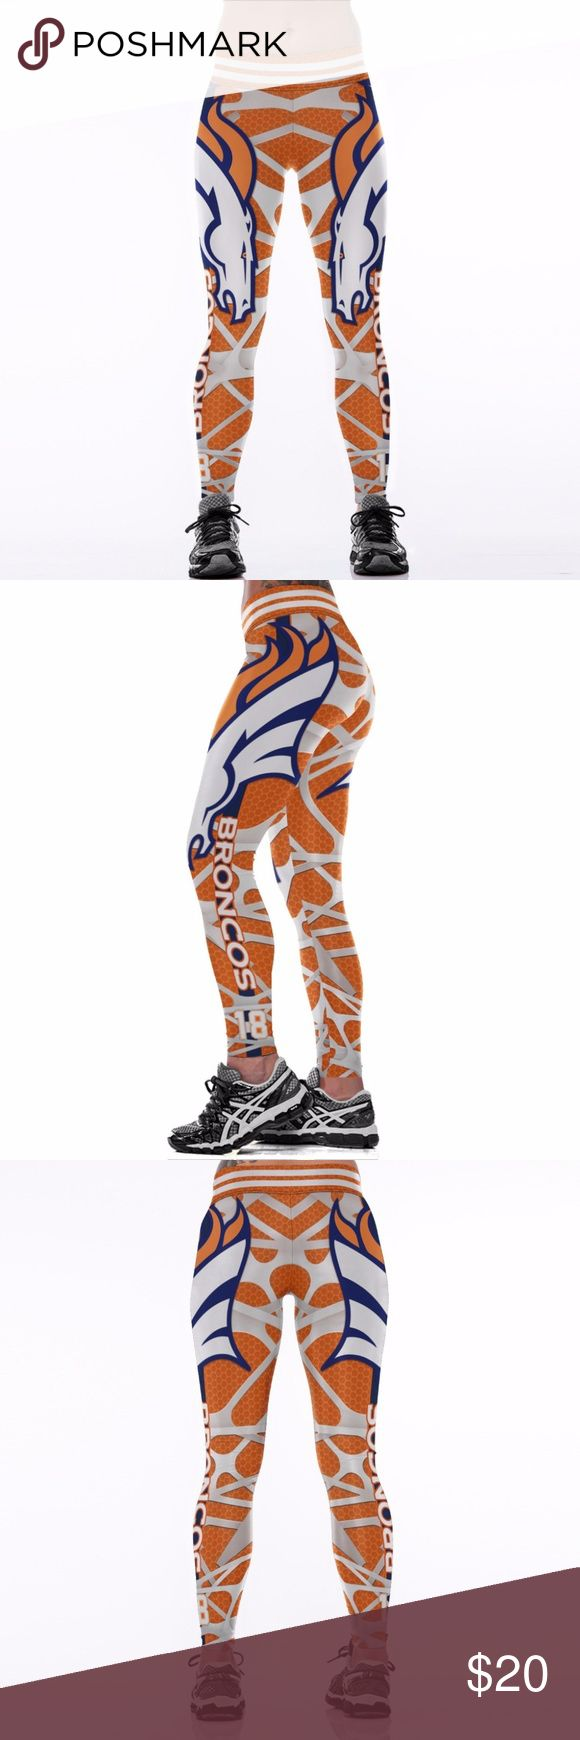 Denver Broncos Leggings Lightweight soft- quick dry breathable fabric Suitable for any kind of workout, gym, yoga, Zumba, cycling, etc. or casual wear High-quality construction with 6-thread double lock stitch seams Four-way Stretch Material: 82% Polyester, 18% Spandex Pants Leggings